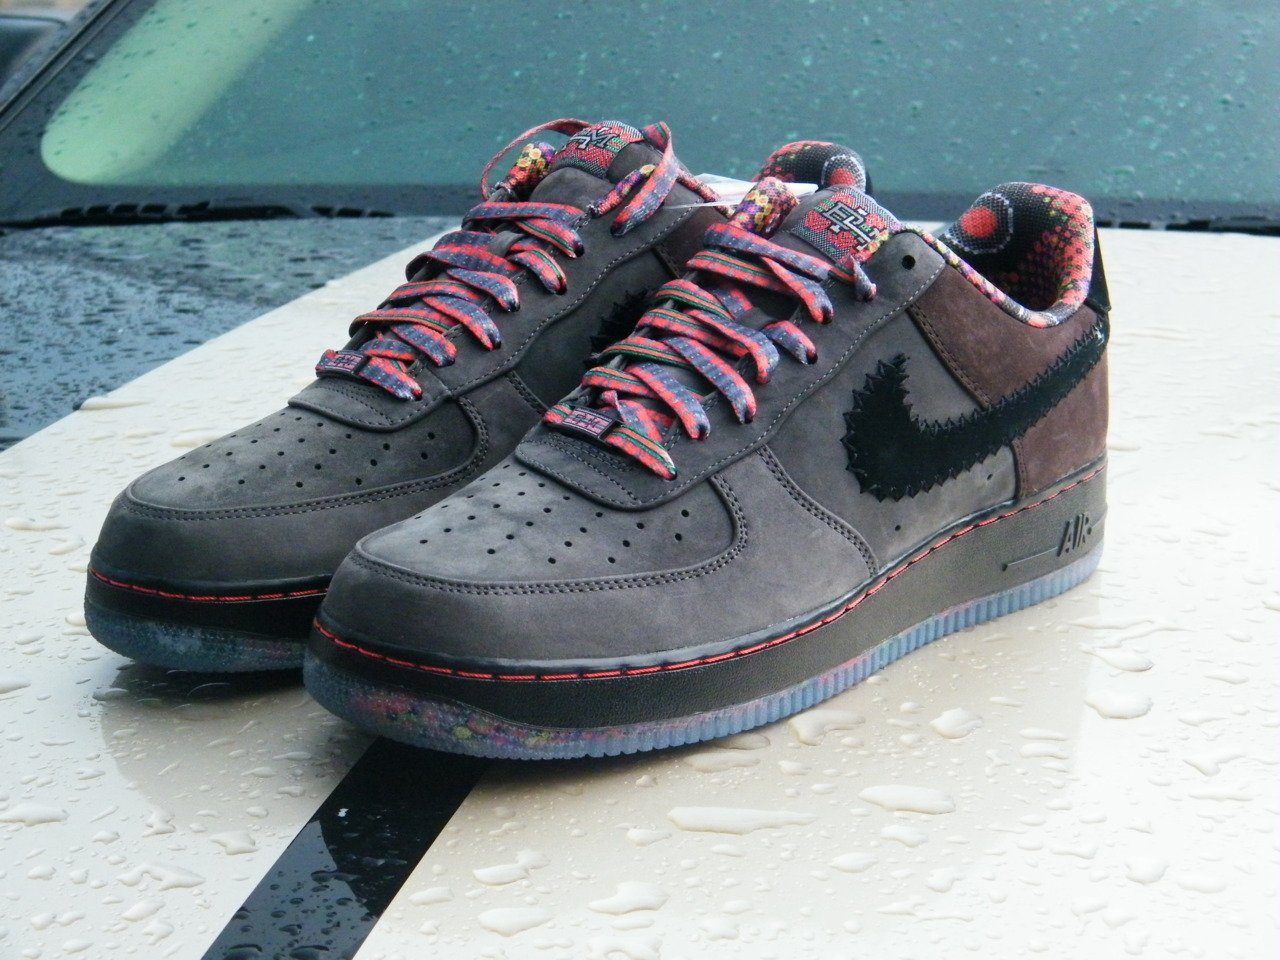 Nike Air Force 1 Low Premium 'Black History Month